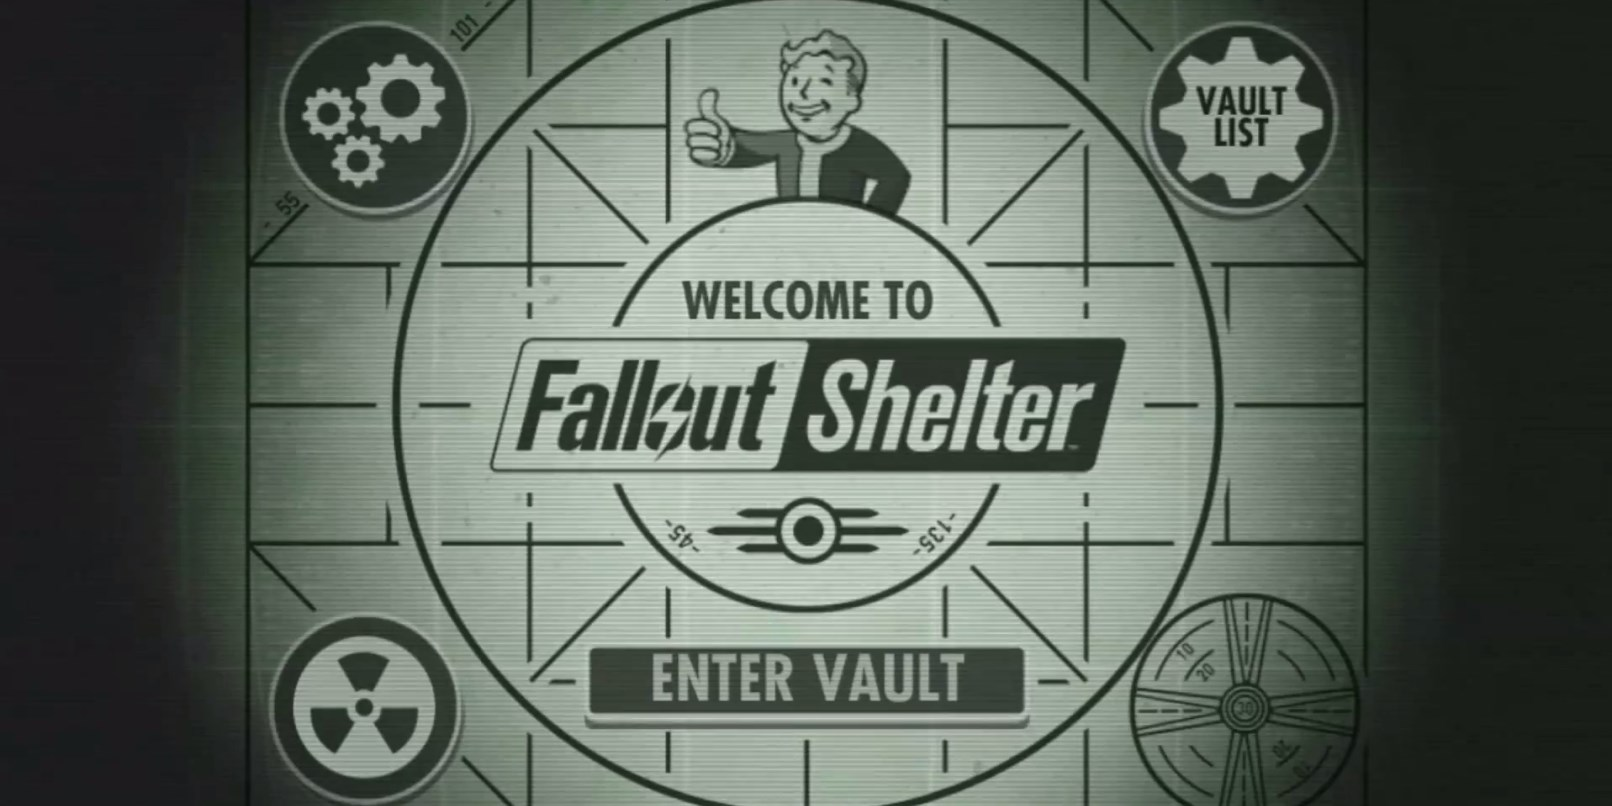 'Fallout Shelter' for Android Finally Available, 1.1 Update Arrives on App Store